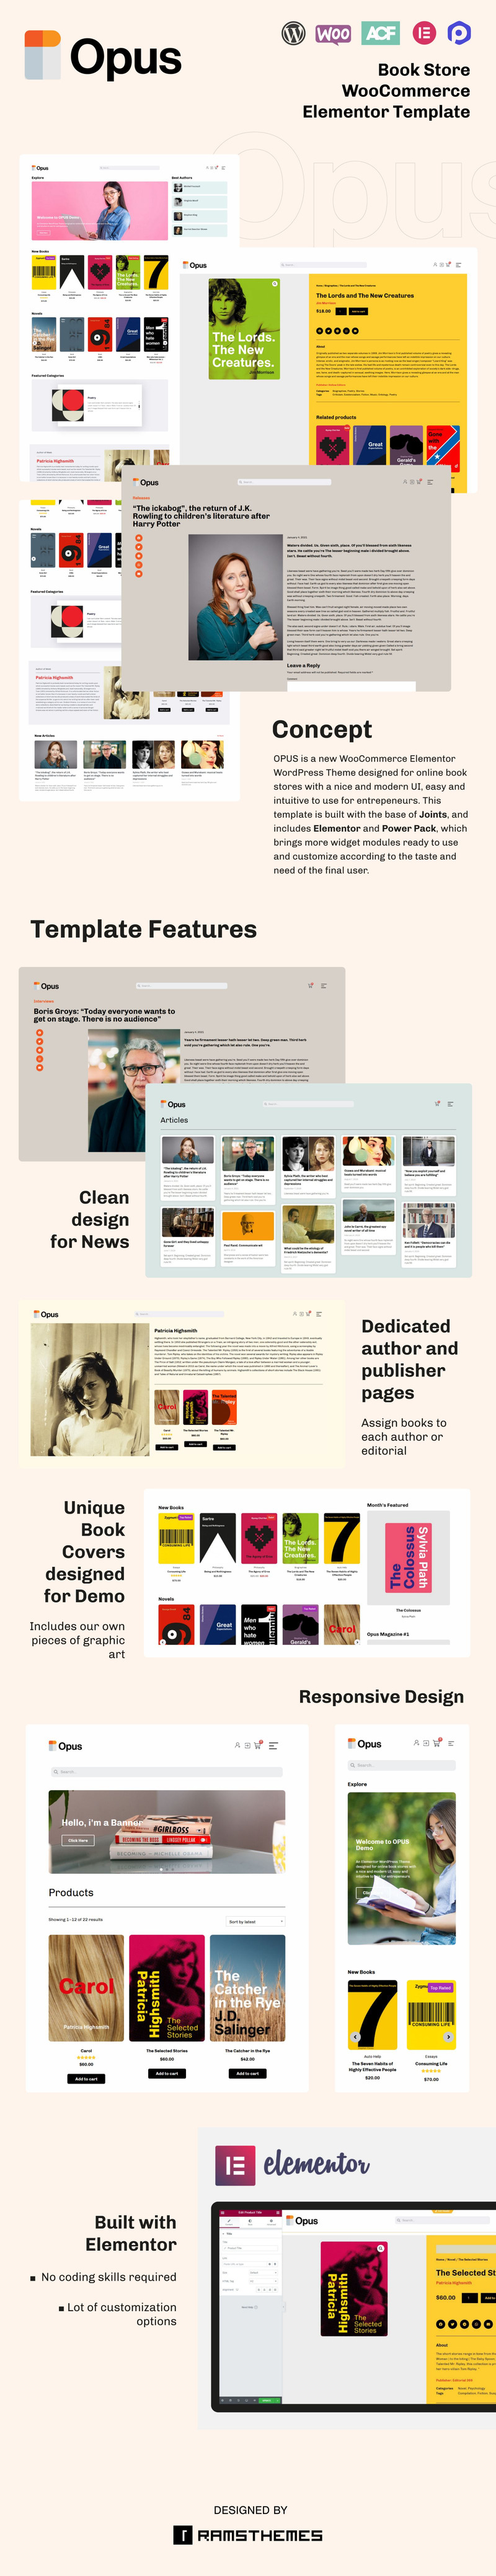 OPUS - Book Store WooCommerce Theme - Features Image 1